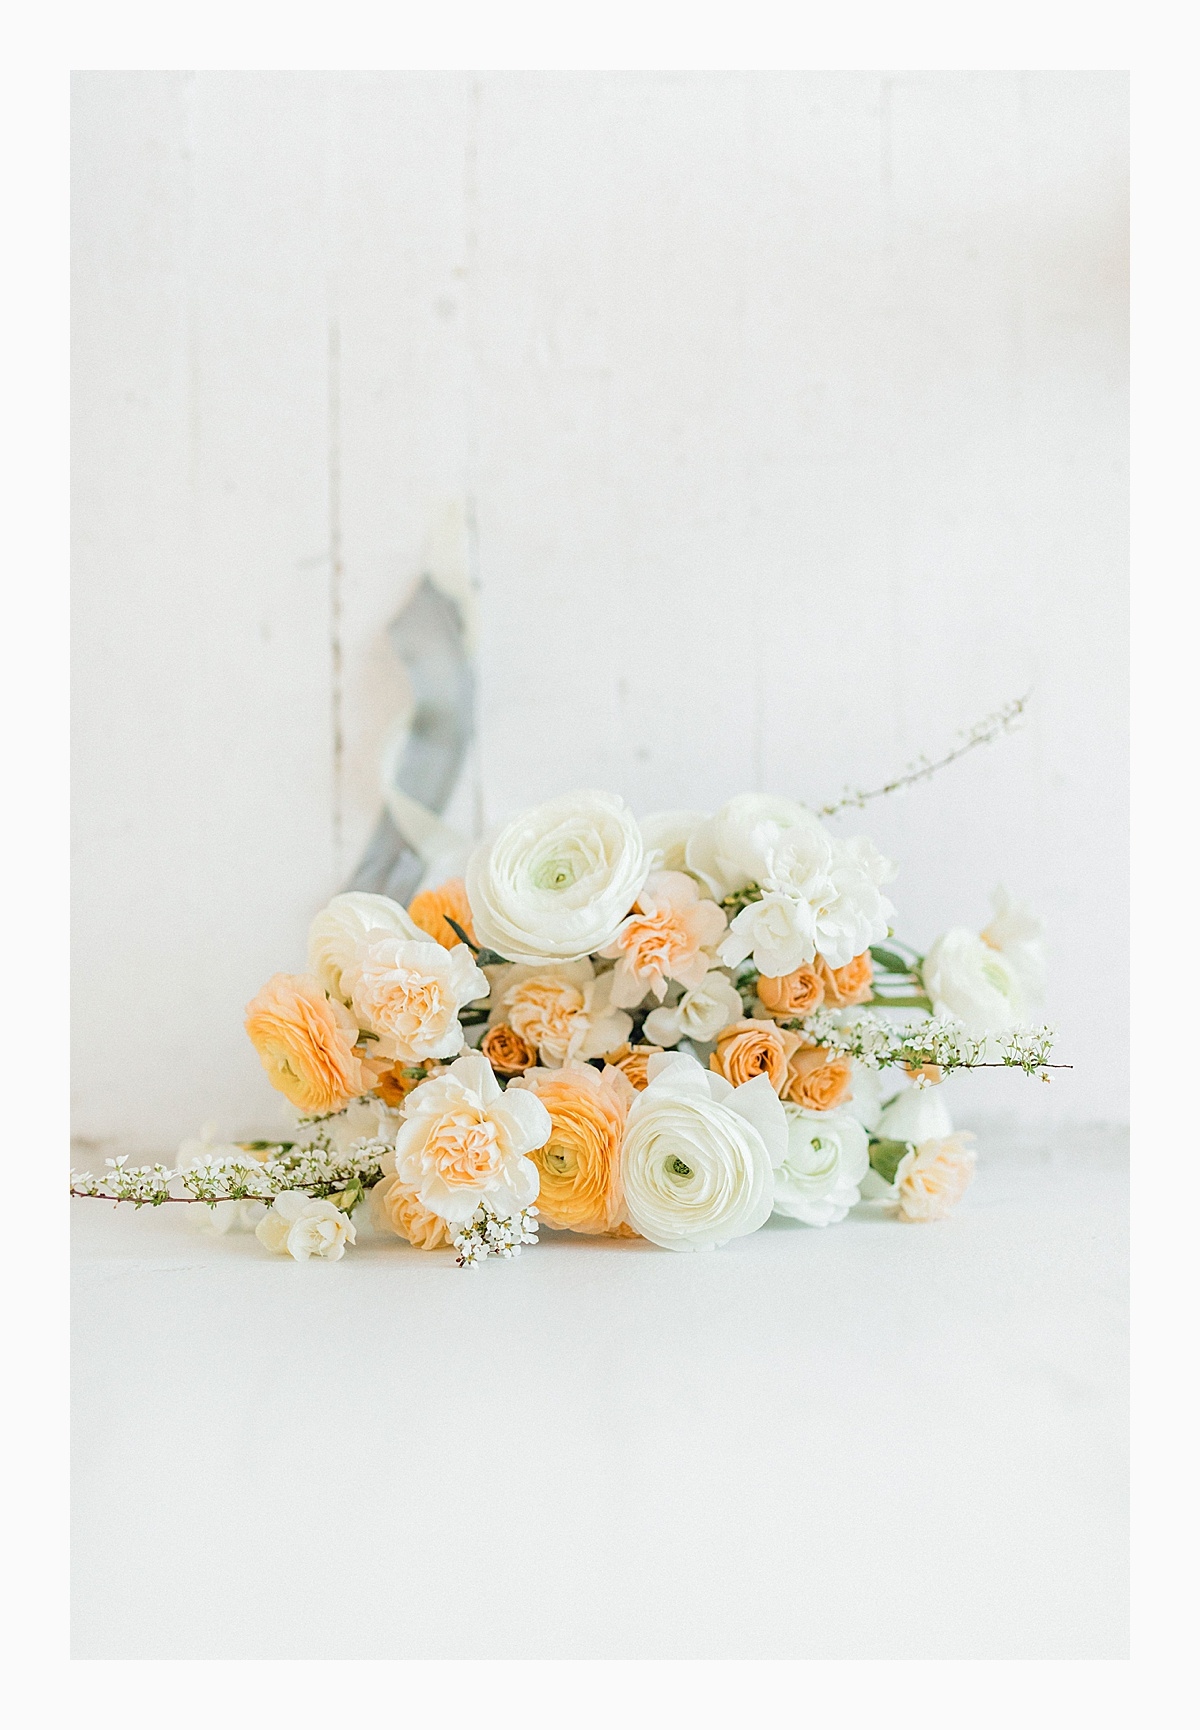 The Bemis Building in downtown Seattle is one of my favorite places to use for photo shoots!  This styled bridal shoot with touches of peach and white was dreamy.  #emmarosecompany #kindredpresets #seattlebride_0008.jpg